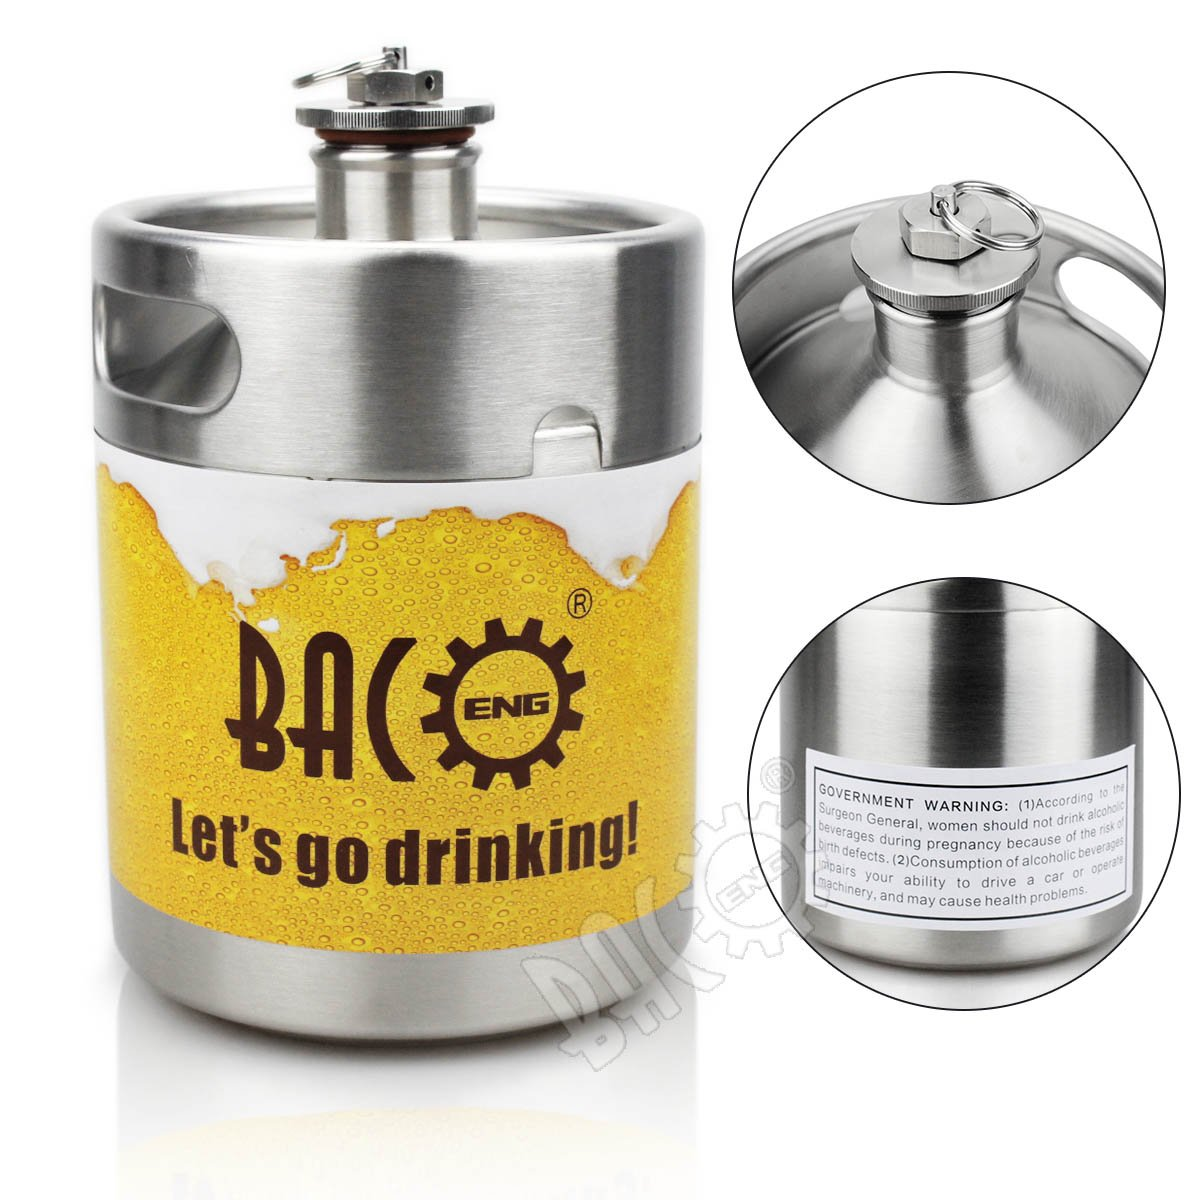 BACOENG 64 OZ Stainless Steel Mini Keg Style Beer Growler w/Exhaust Valve and Government Warning Label